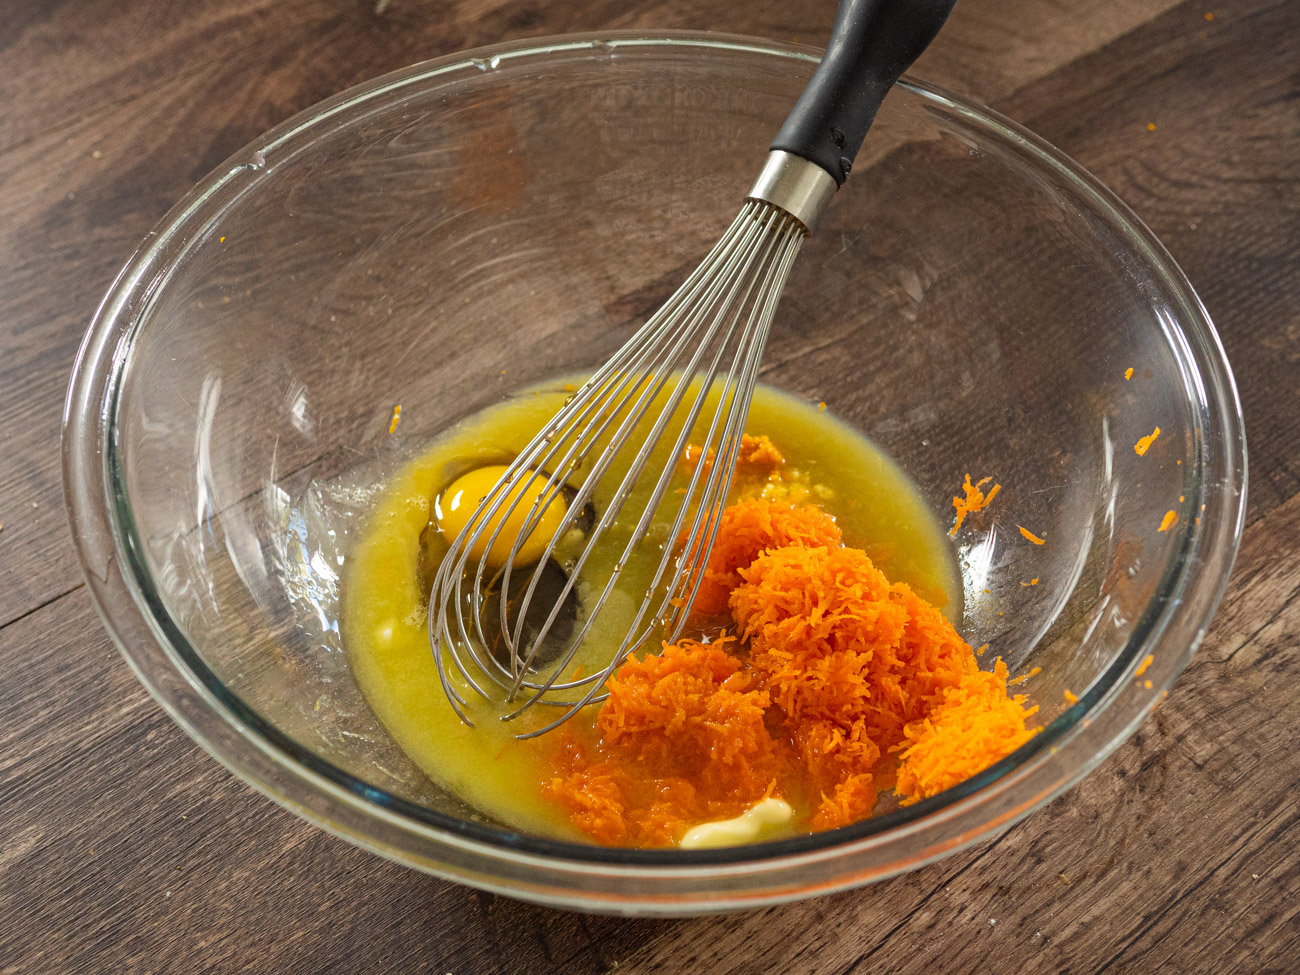 In a large bowl, combine the egg, orange zest, maple syrup, orange juice, melted butter, and fresh ginger until well blended. Fold in grated carrots.